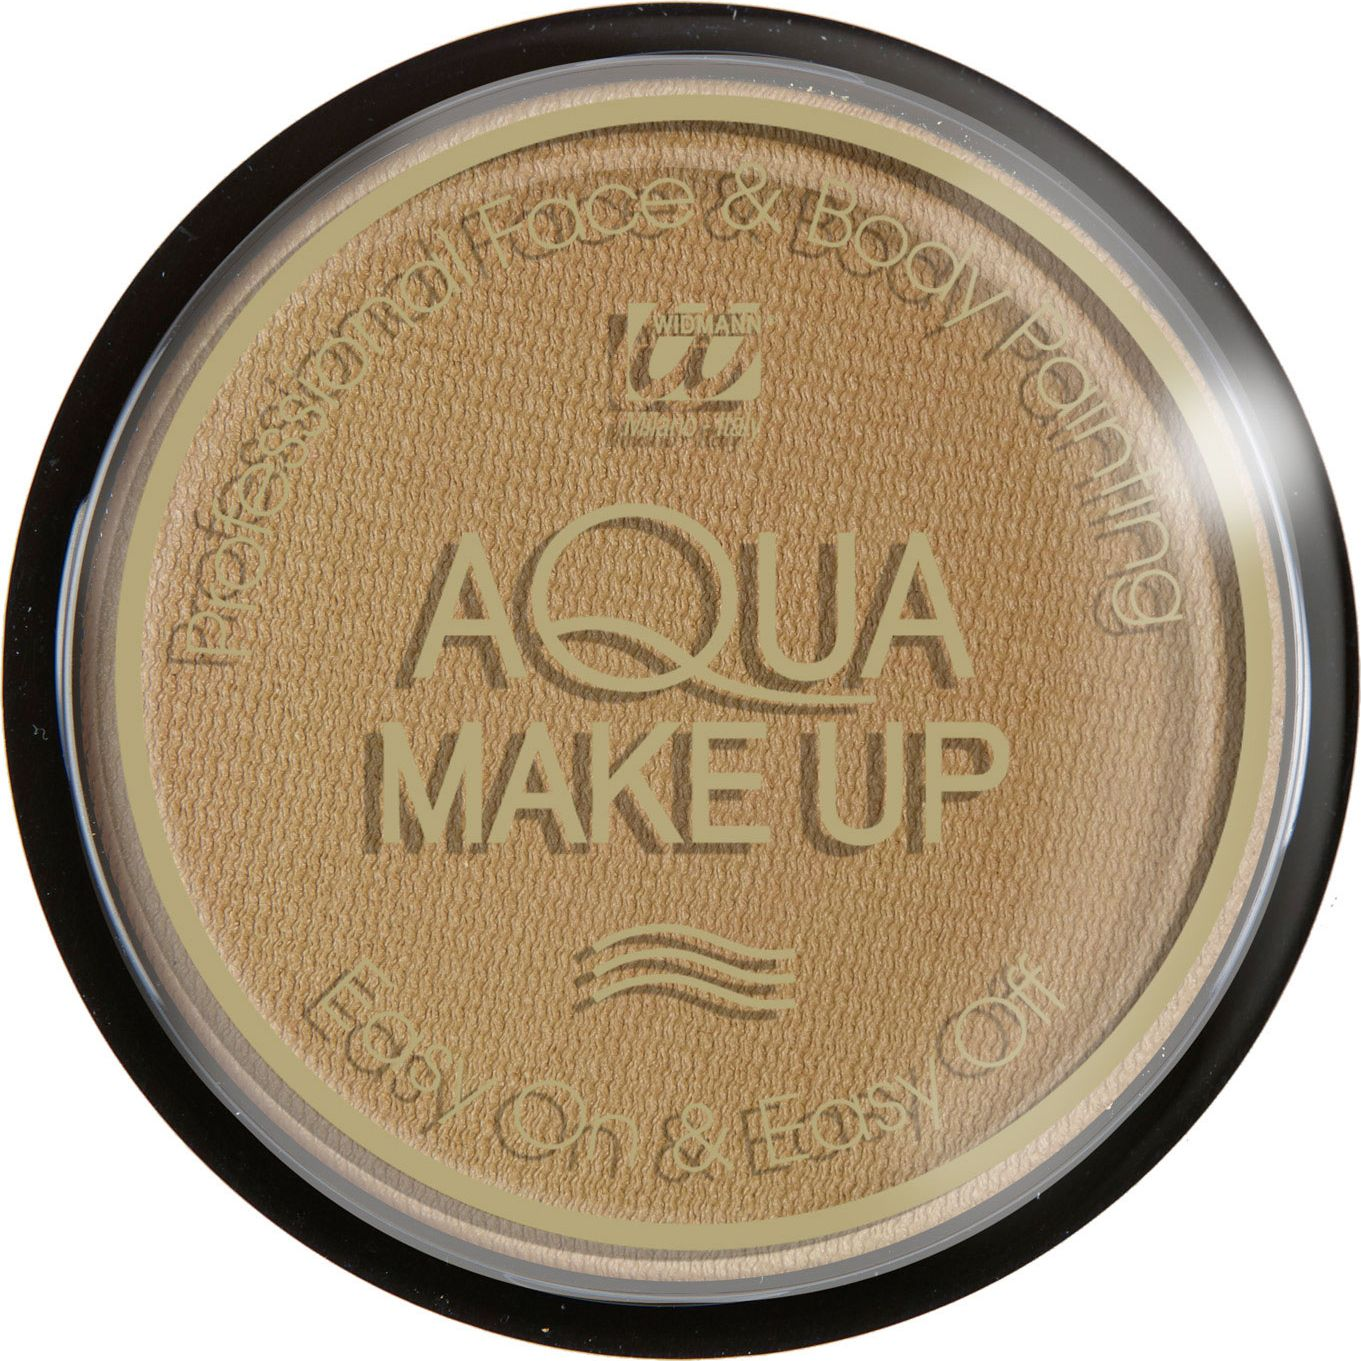 Donker beige aqua make-up